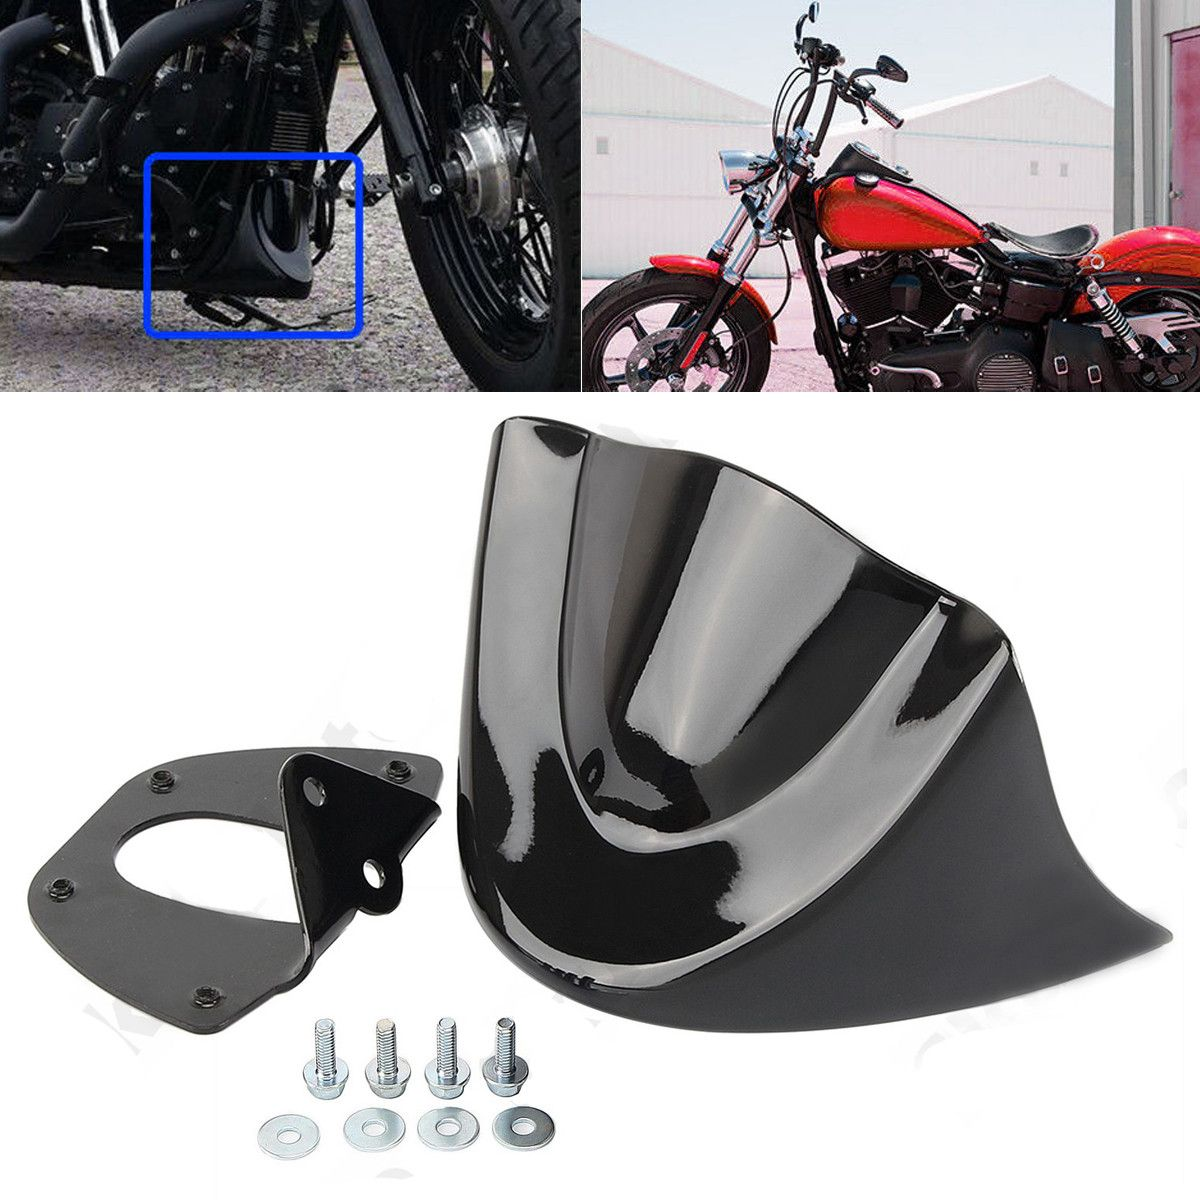 Glossy Black Motorcycle Front Chin Spoiler Air Dam Fairing Cover Mudguard Air Dam Fairing for Harley Dyna 2006-2017